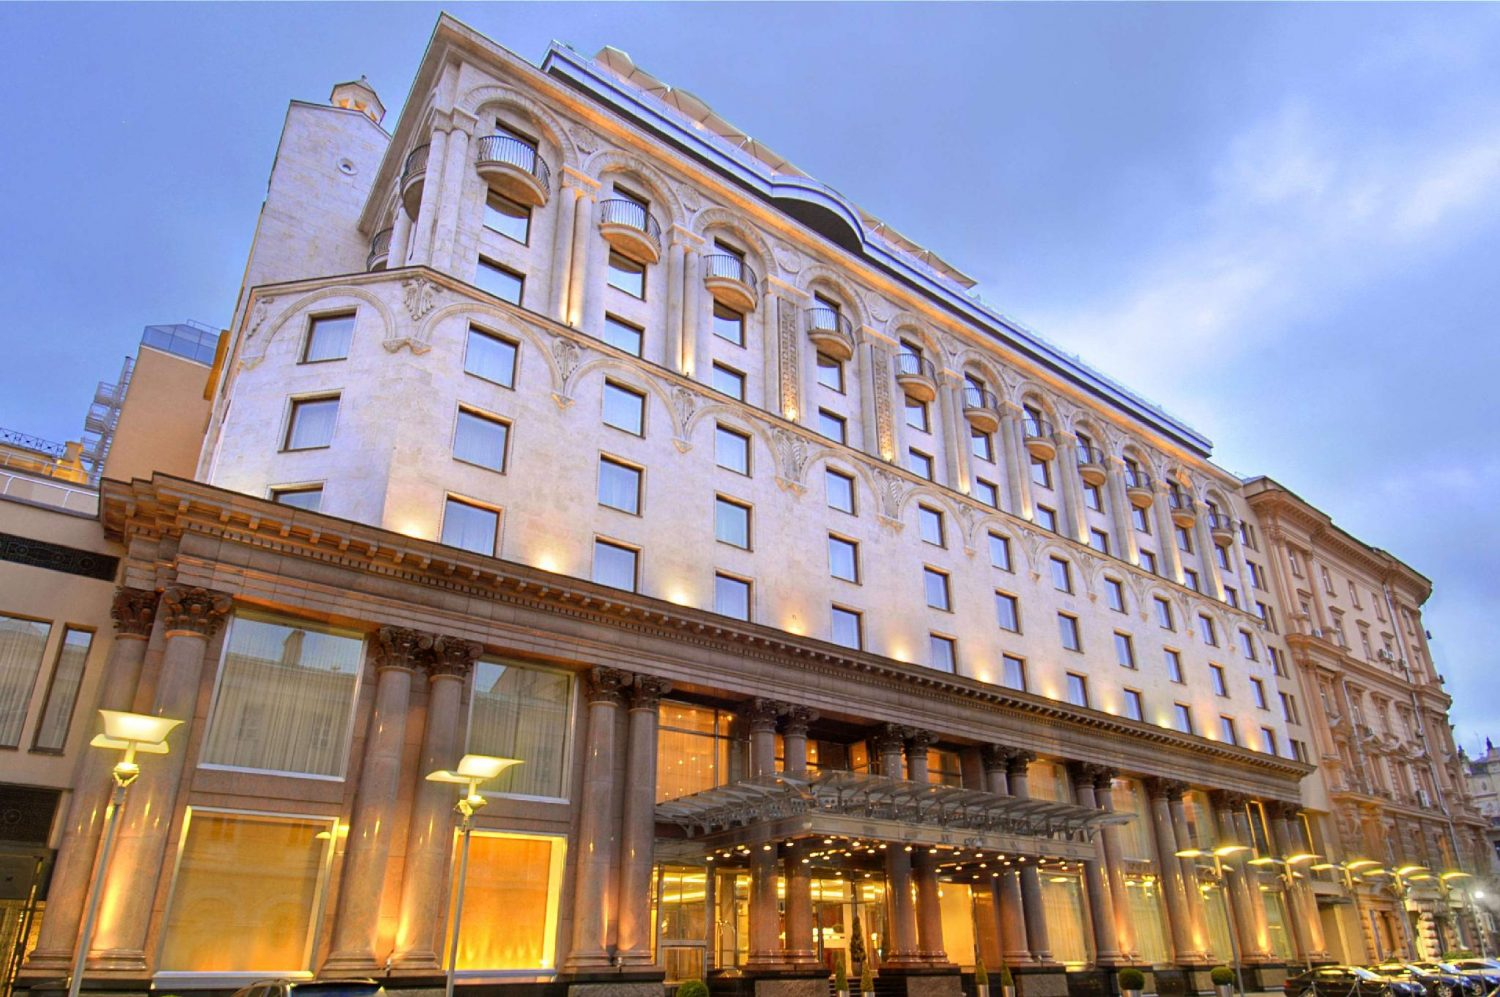 ararat hotel of Moscow city guide moscow city guide MOSCOW CITY GUIDE ararat